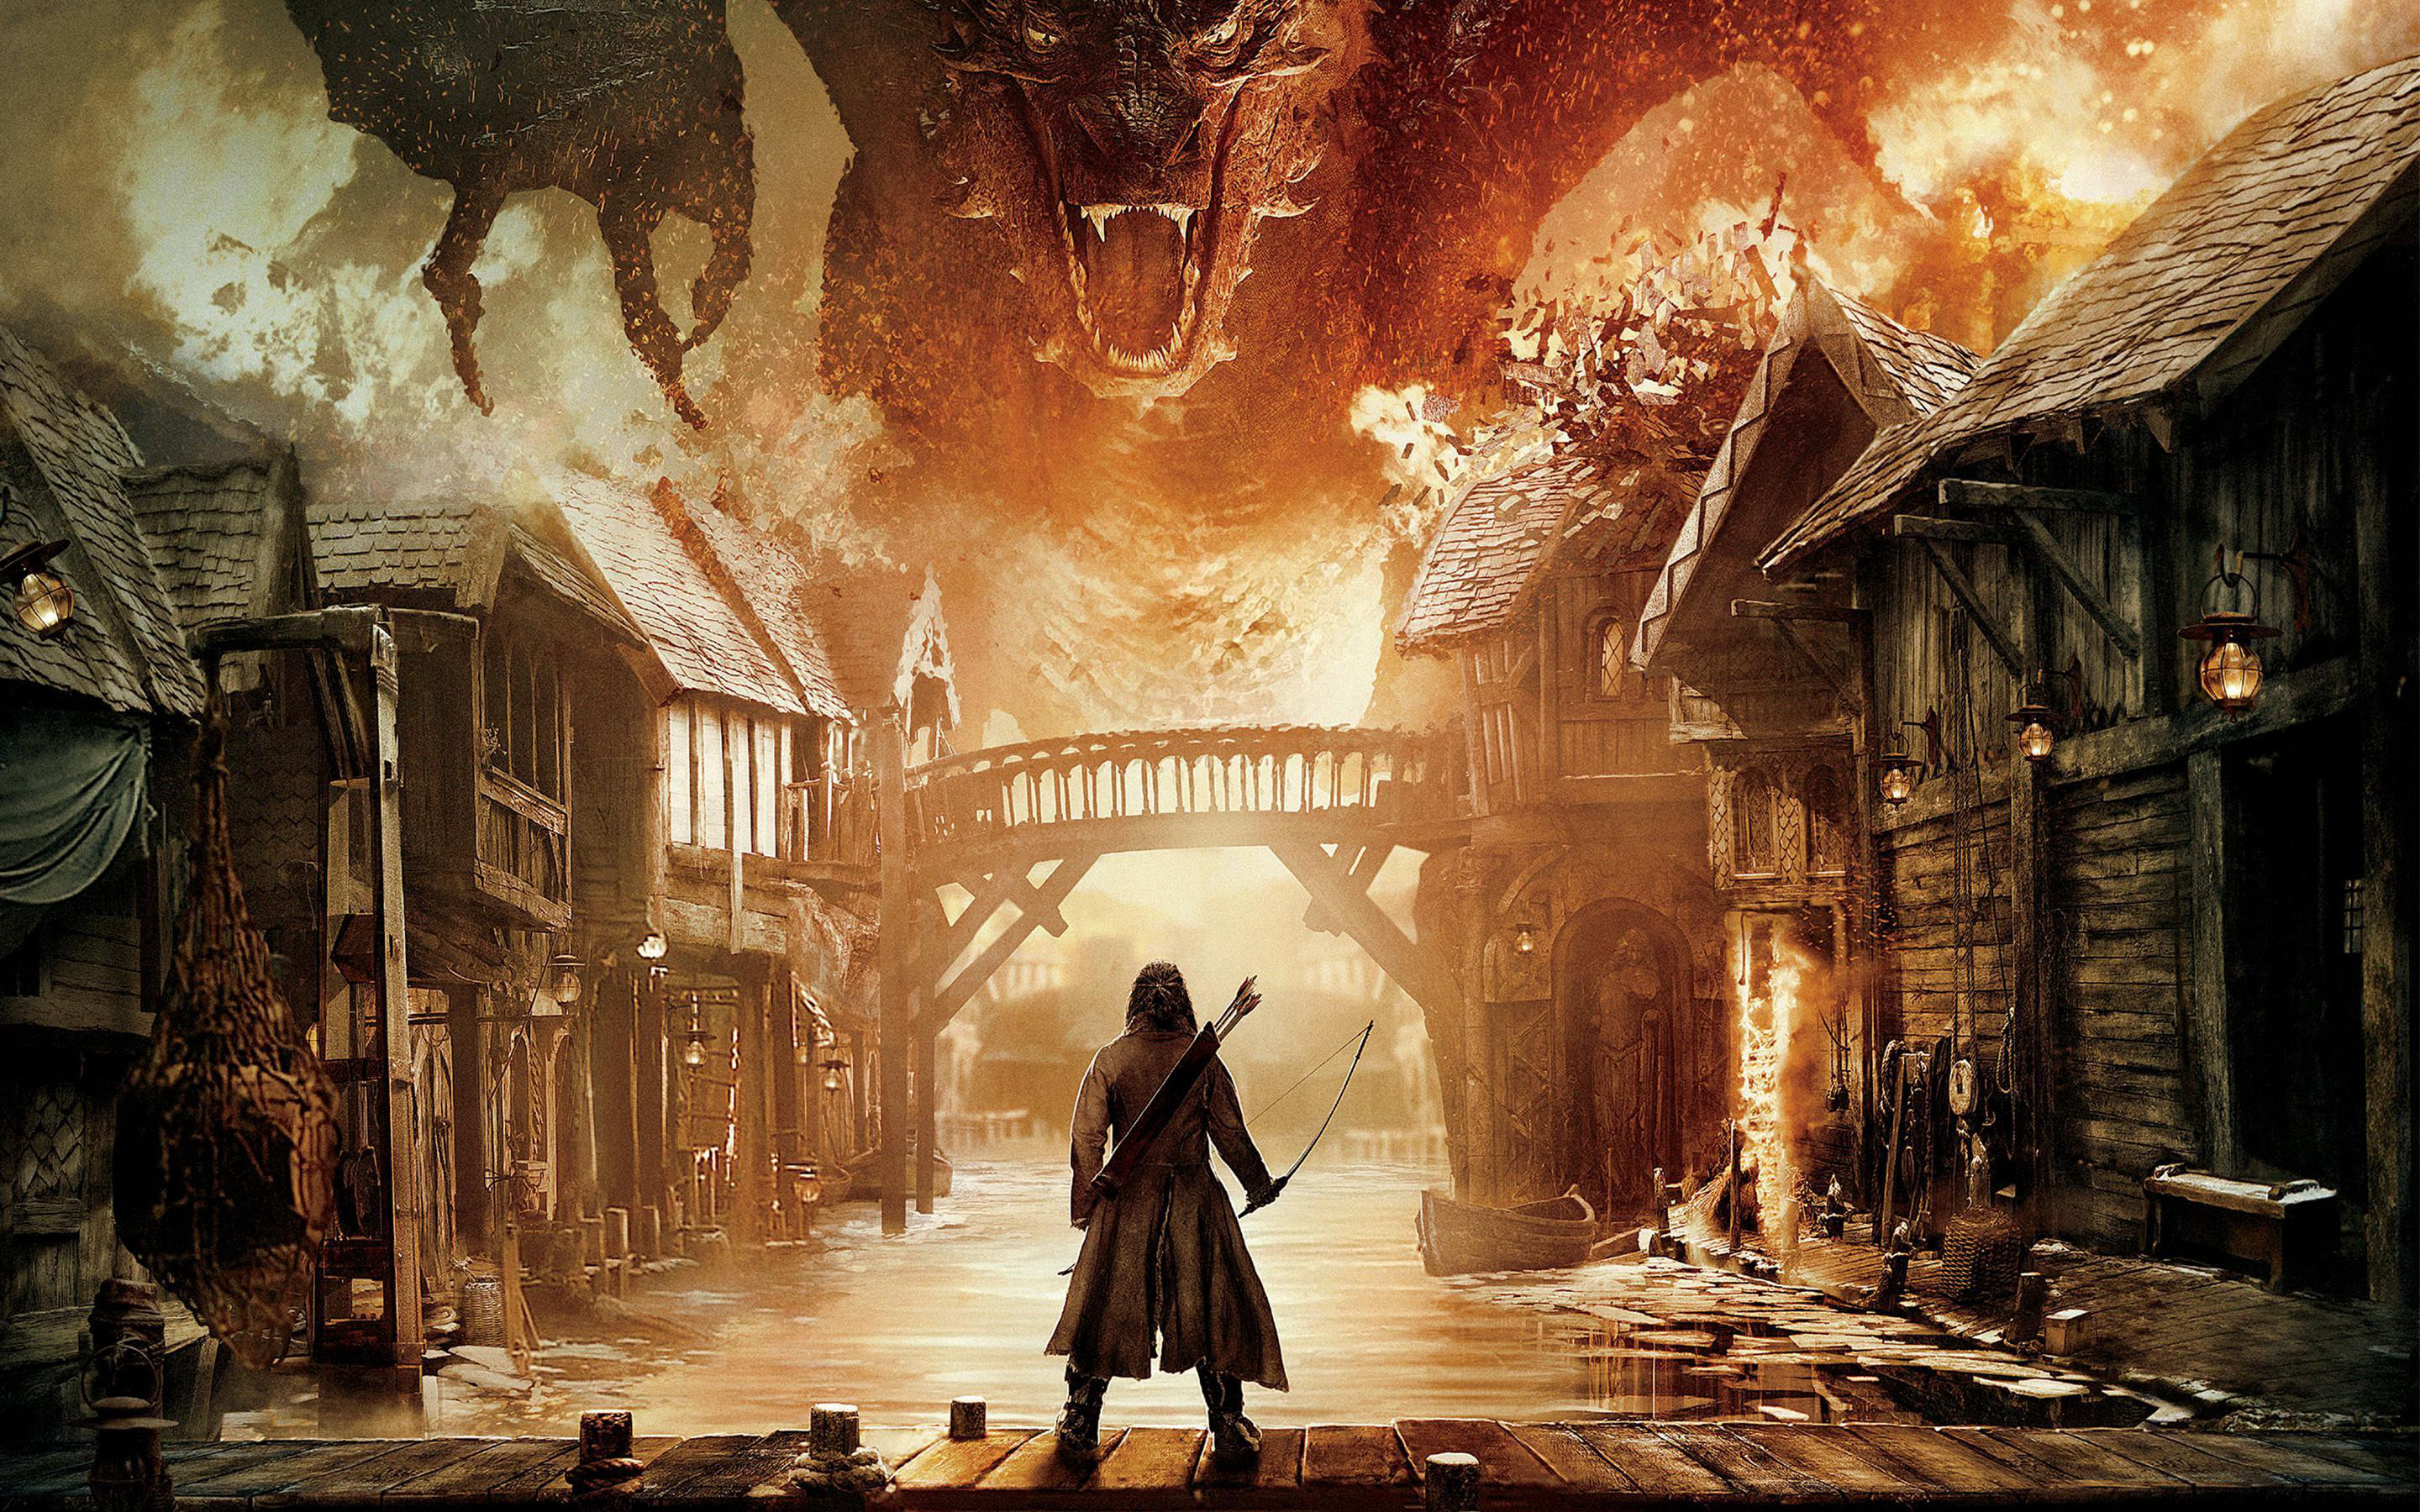 2880x1800  52 The Hobbit: The Battle of the Five Armies HD Wallpapers |  Background Images - Wallpaper Abyss